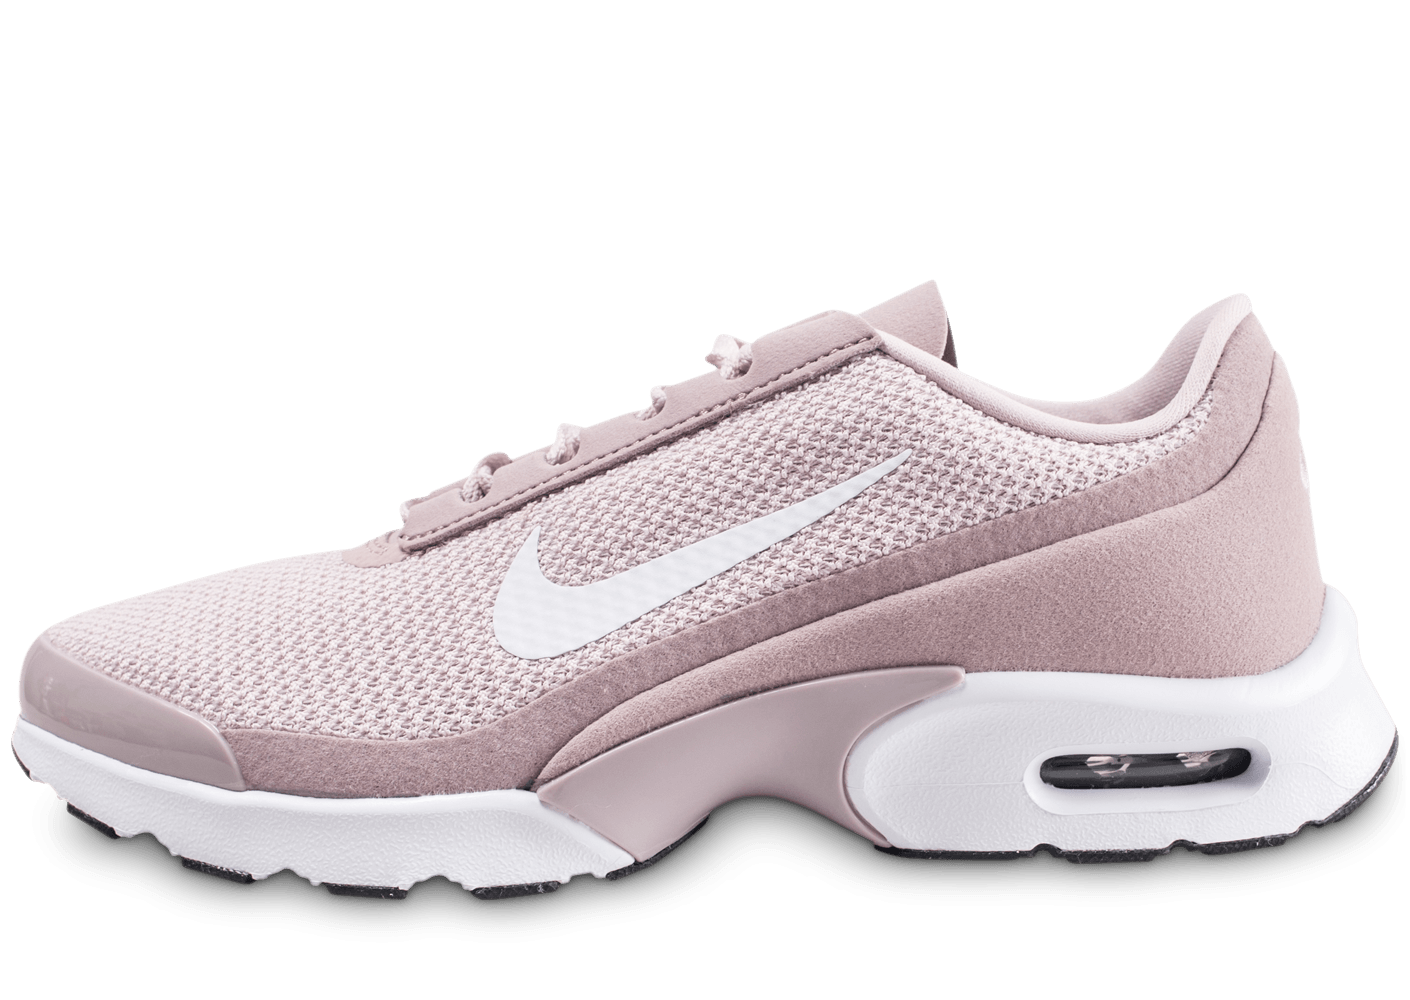 nike air max jewell rose et blanche chaussures femme chausport. Black Bedroom Furniture Sets. Home Design Ideas